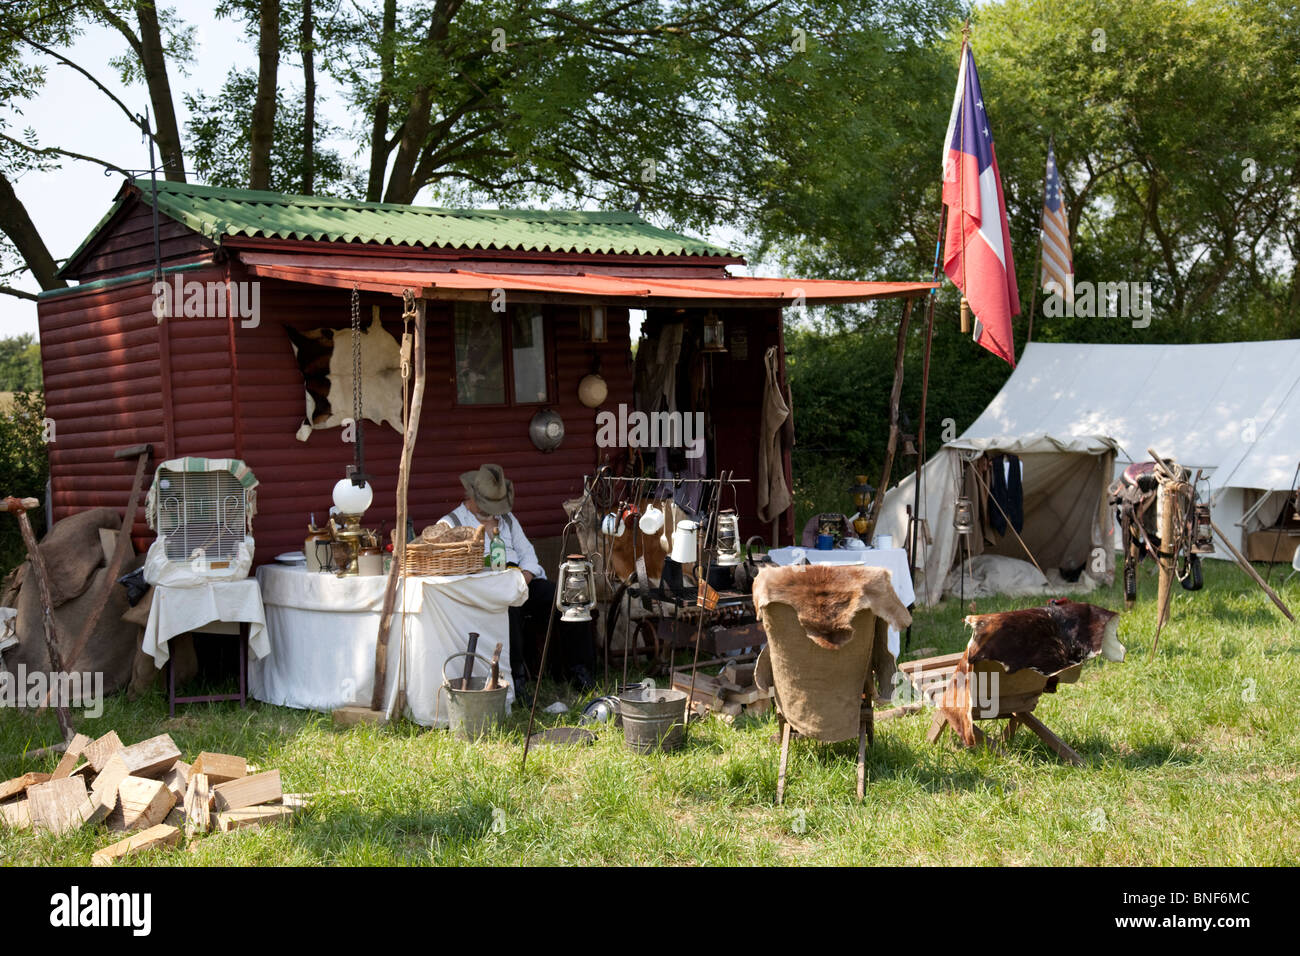 Early American Pioneer Settler Wooden Shack Homestead Settlers Uk Stock Photo Royalty Free